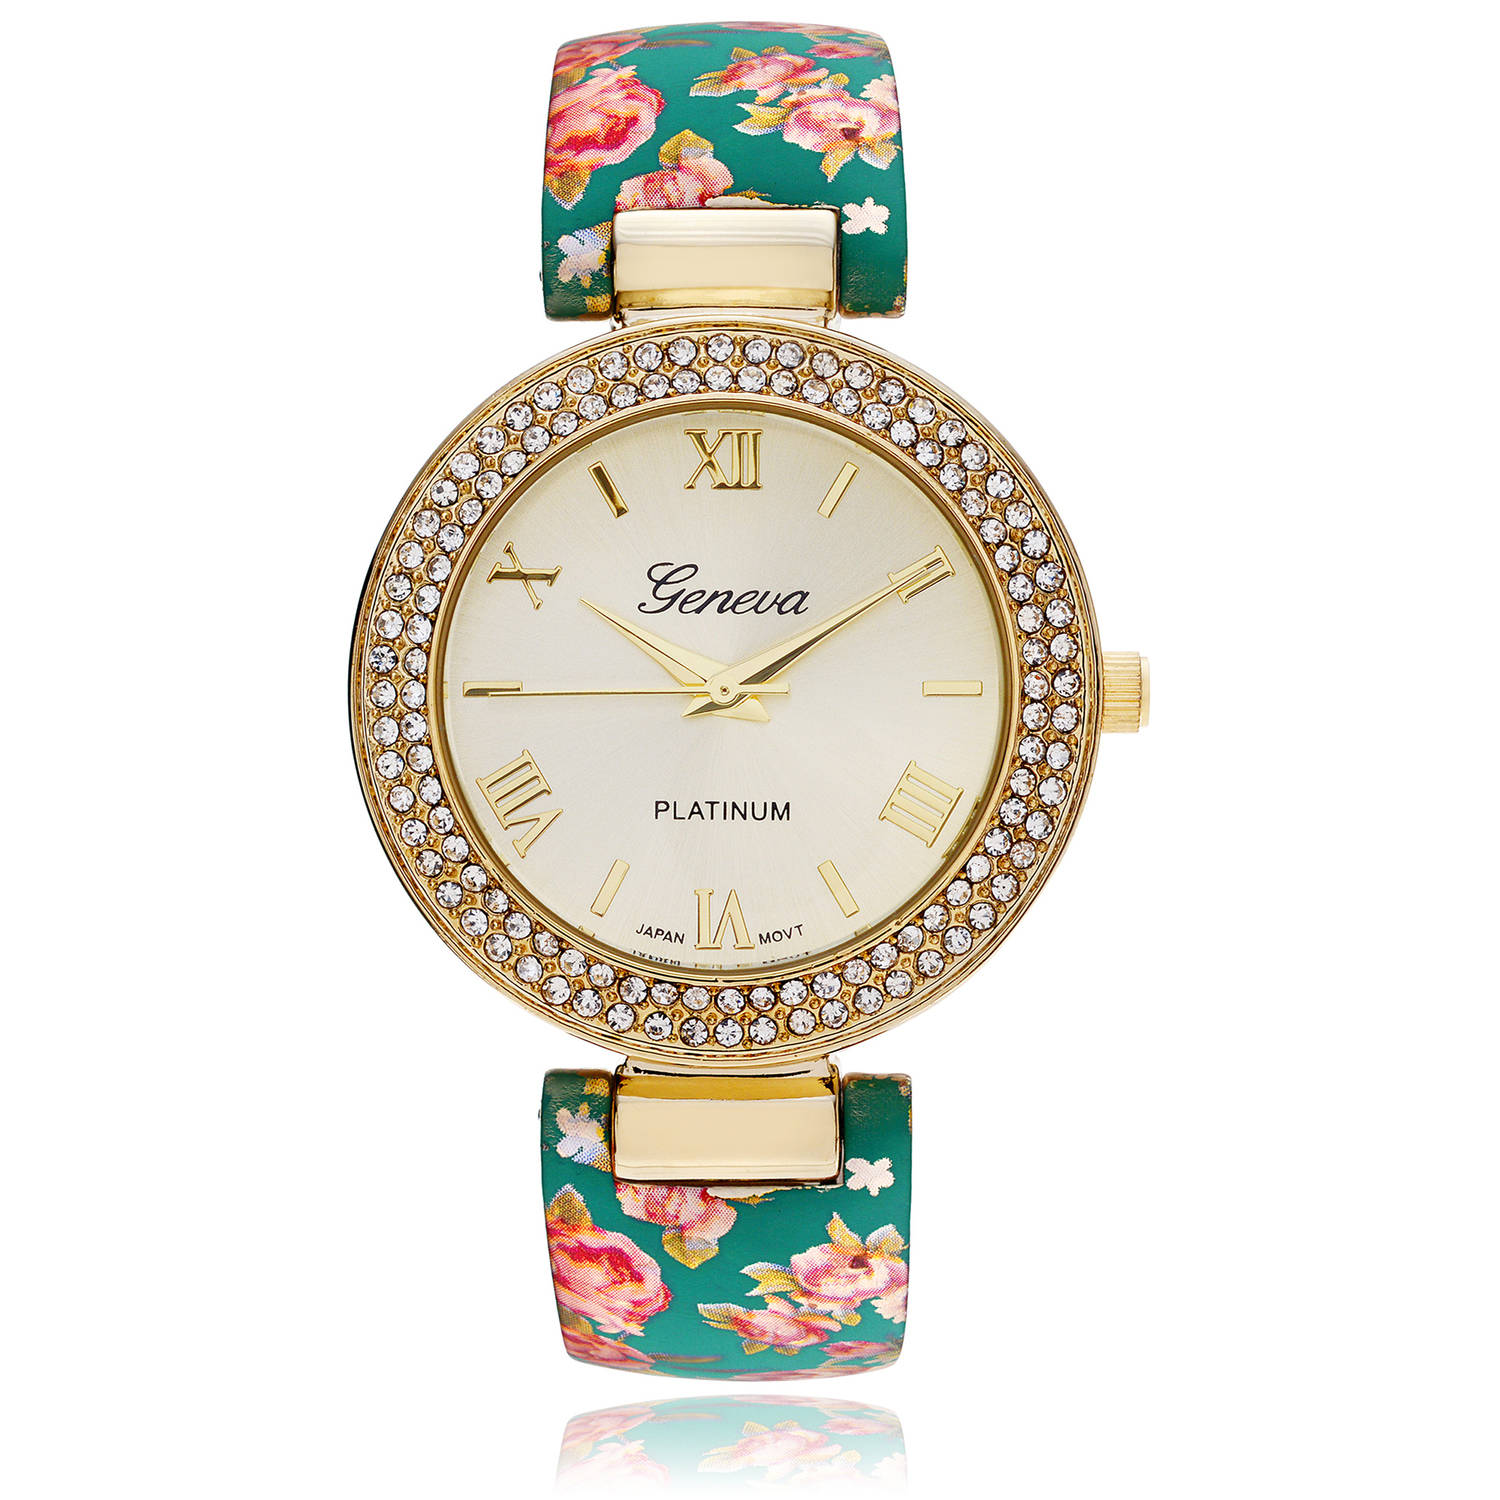 Brinley Co. Women's Rhinestone Accent Floral Cuff Fashion Watch, Gold/Turquoise